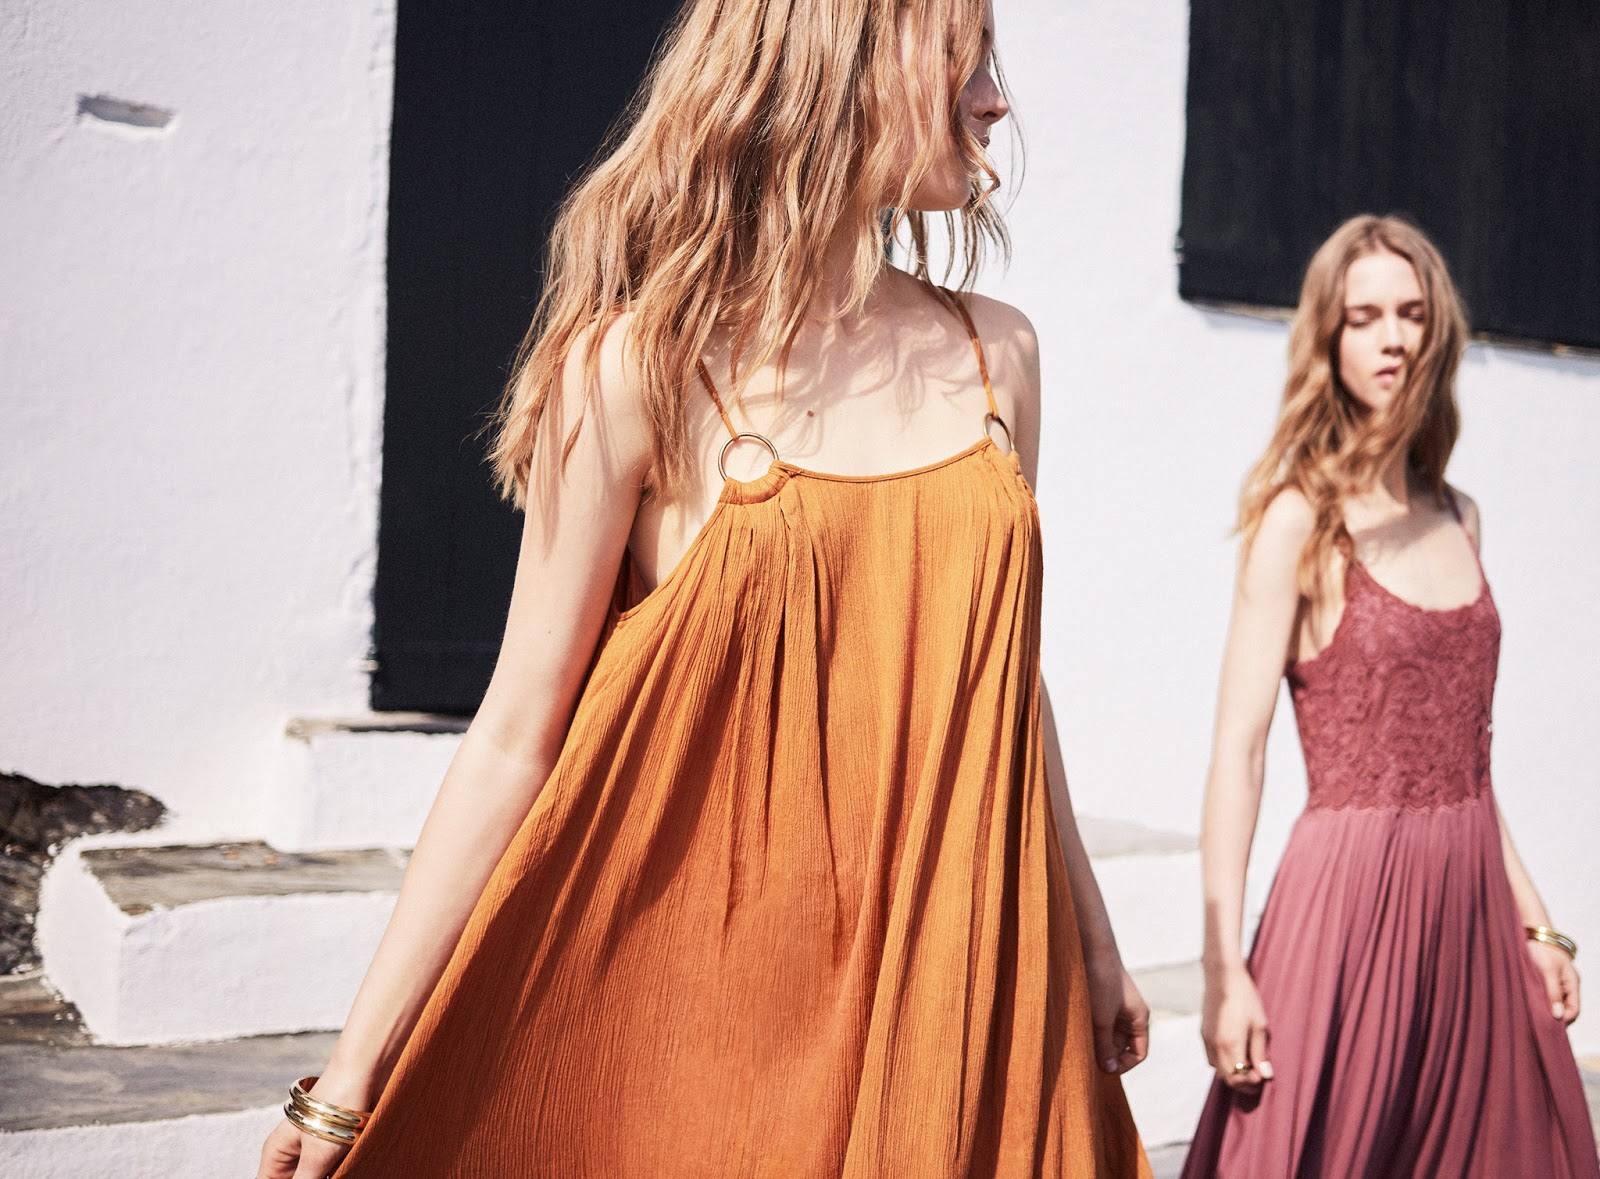 Mango Bohemian Spirit Spring/Summer 2016 Look book via www.fashionedbylove.co.uk